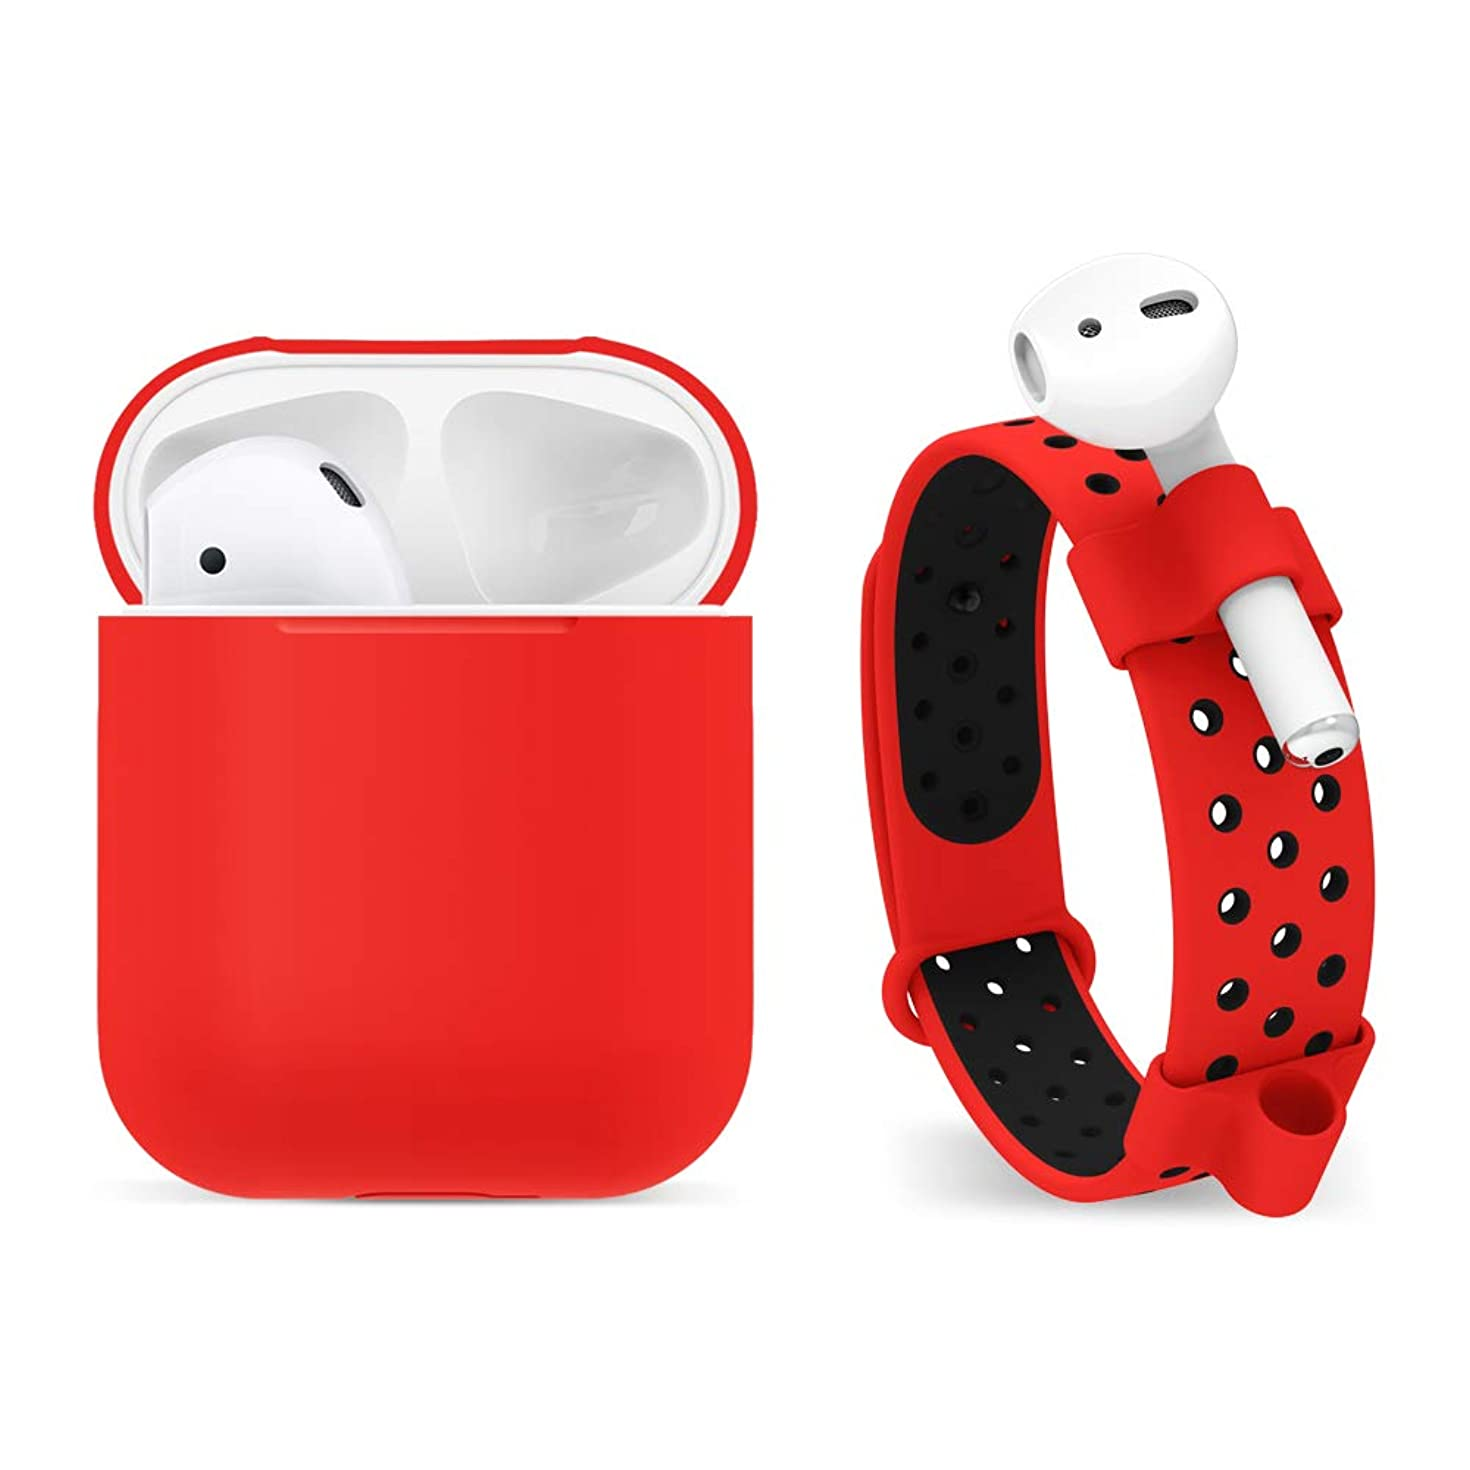 FRTMA Compatible with AirPods Silicone Case, Adjustable Anti-Lost Watch Band & Holder Compatible AirPods Headphone (Red)